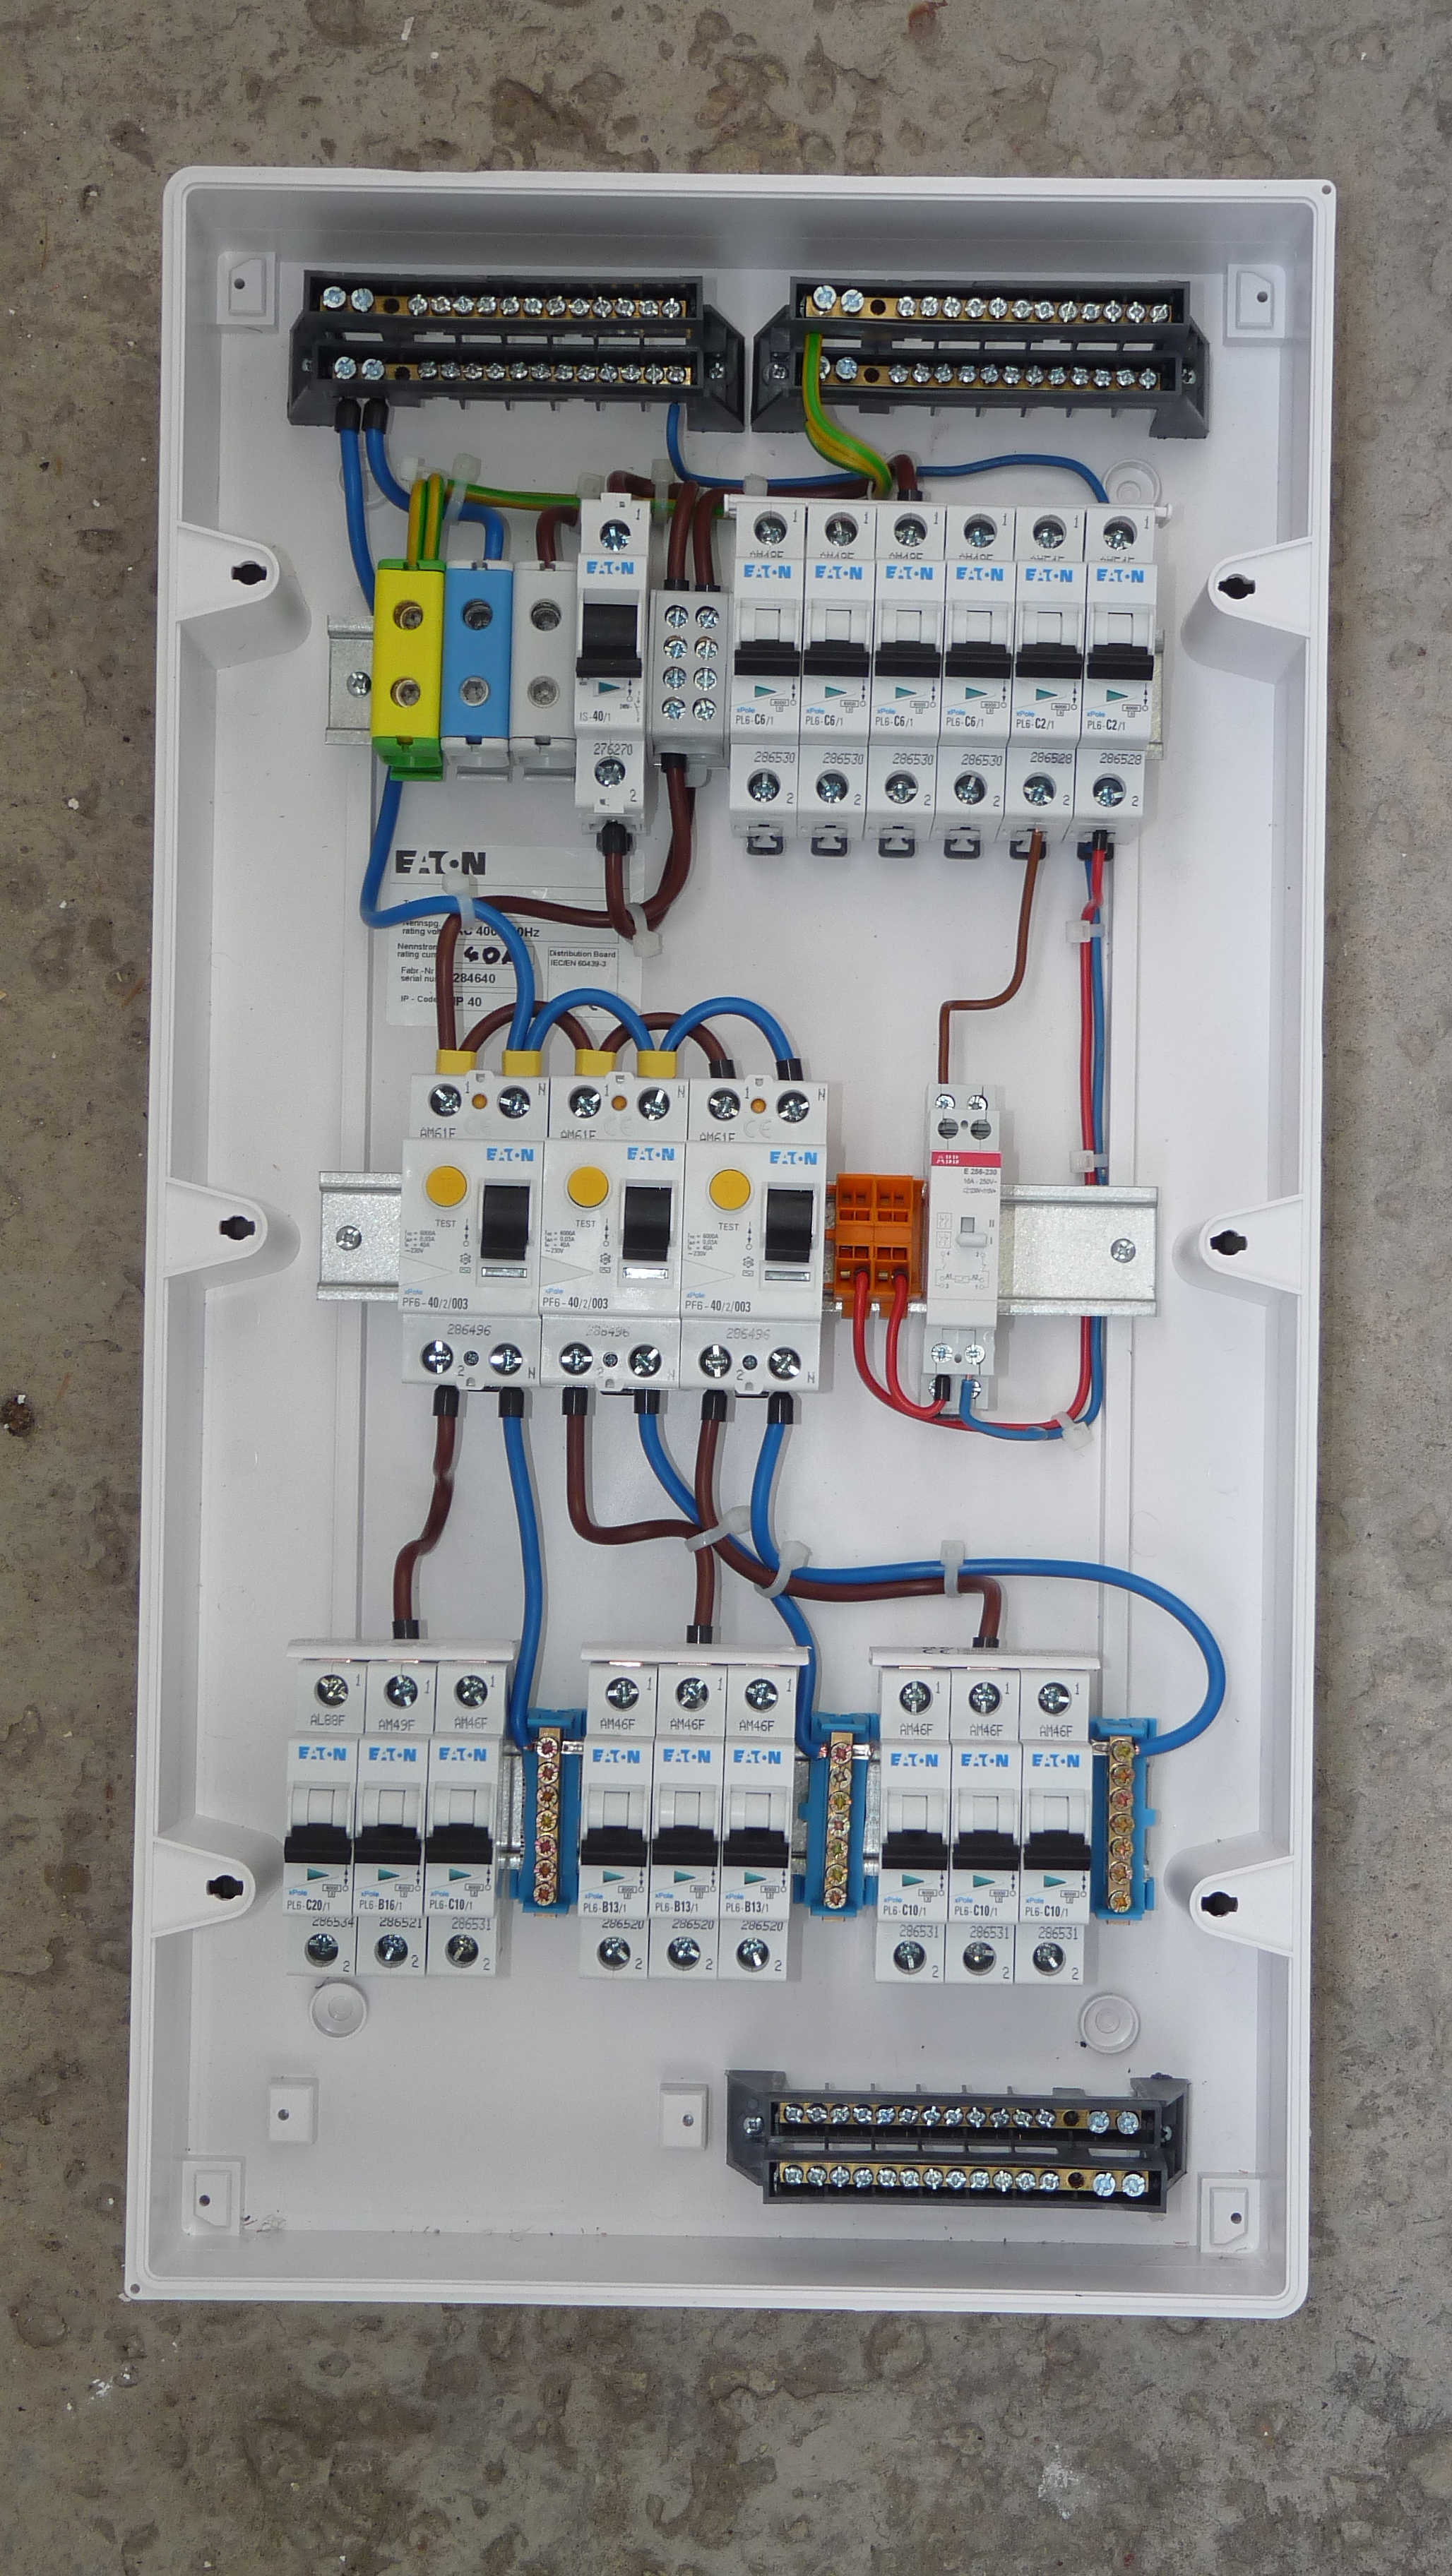 modern house wiring diagram toyota color codes file paekaare 24 fuse box jpg wikimedia commons